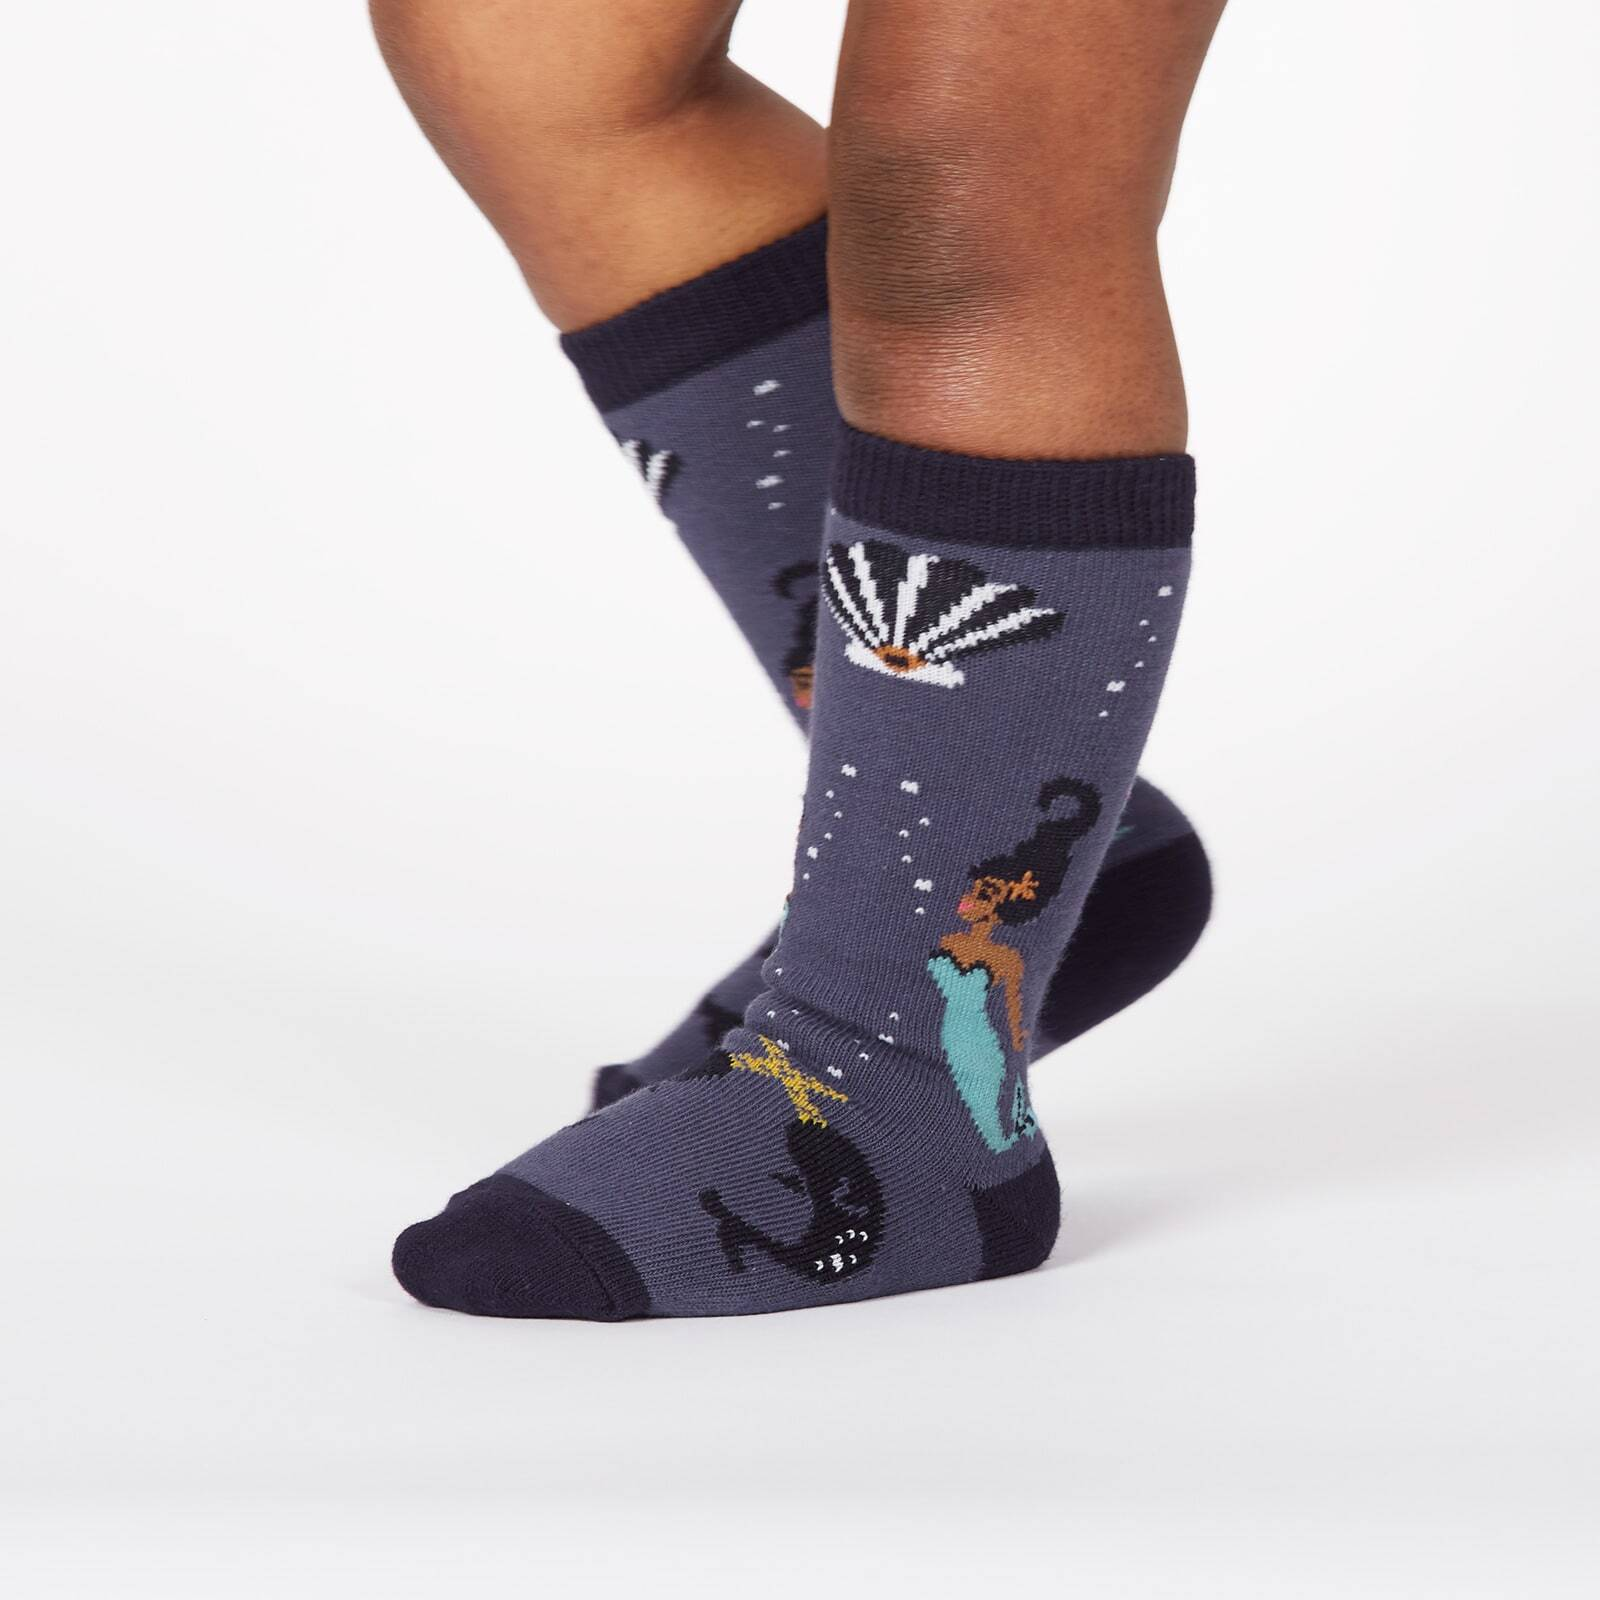 model wearing Deep Sea Queen - Mermaid and Sea Creatures Knee High Socks Grey - Toddler